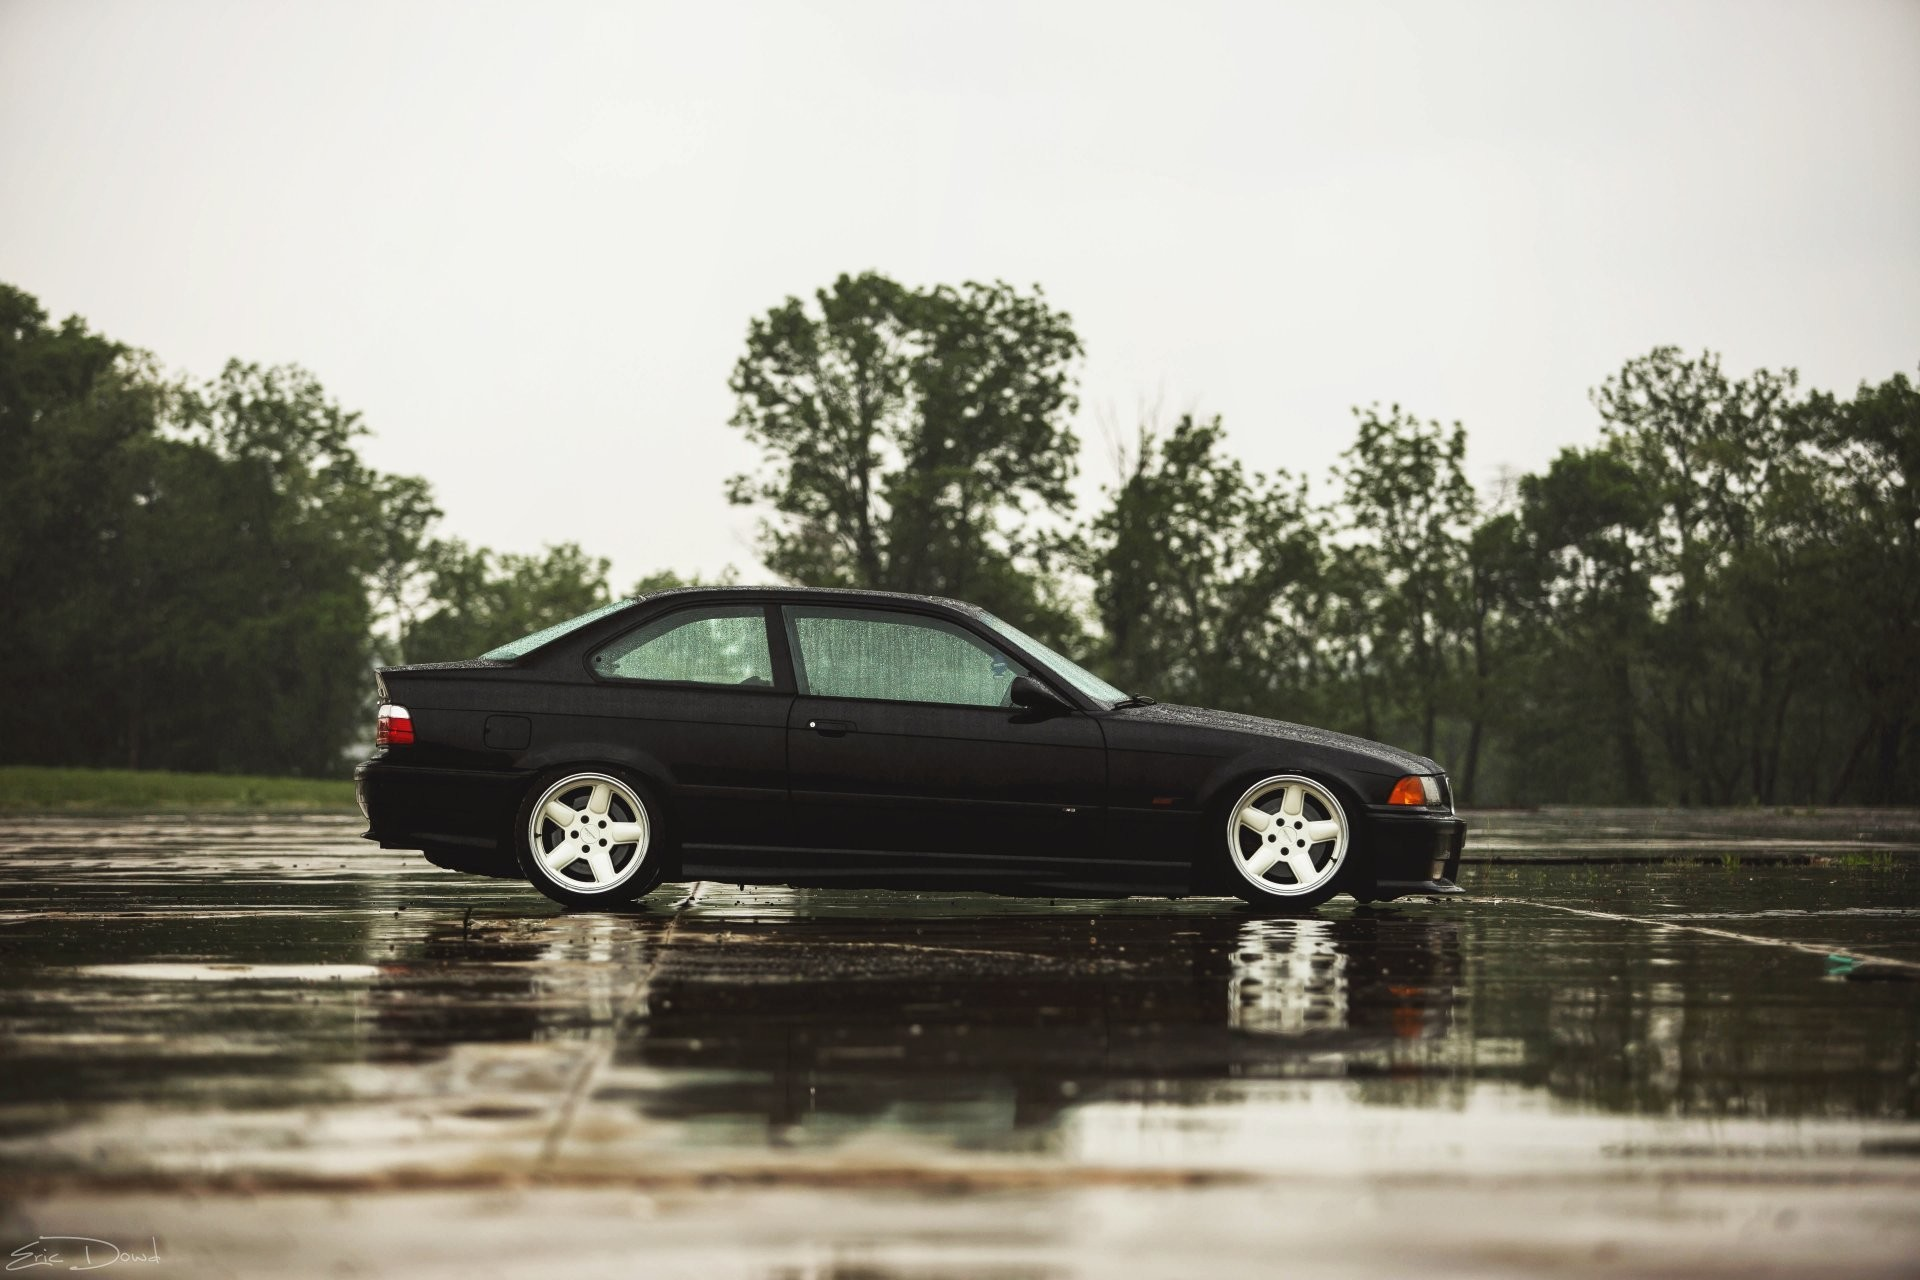 1920x1280 bmw m3 e36 black bmw coupe black rain